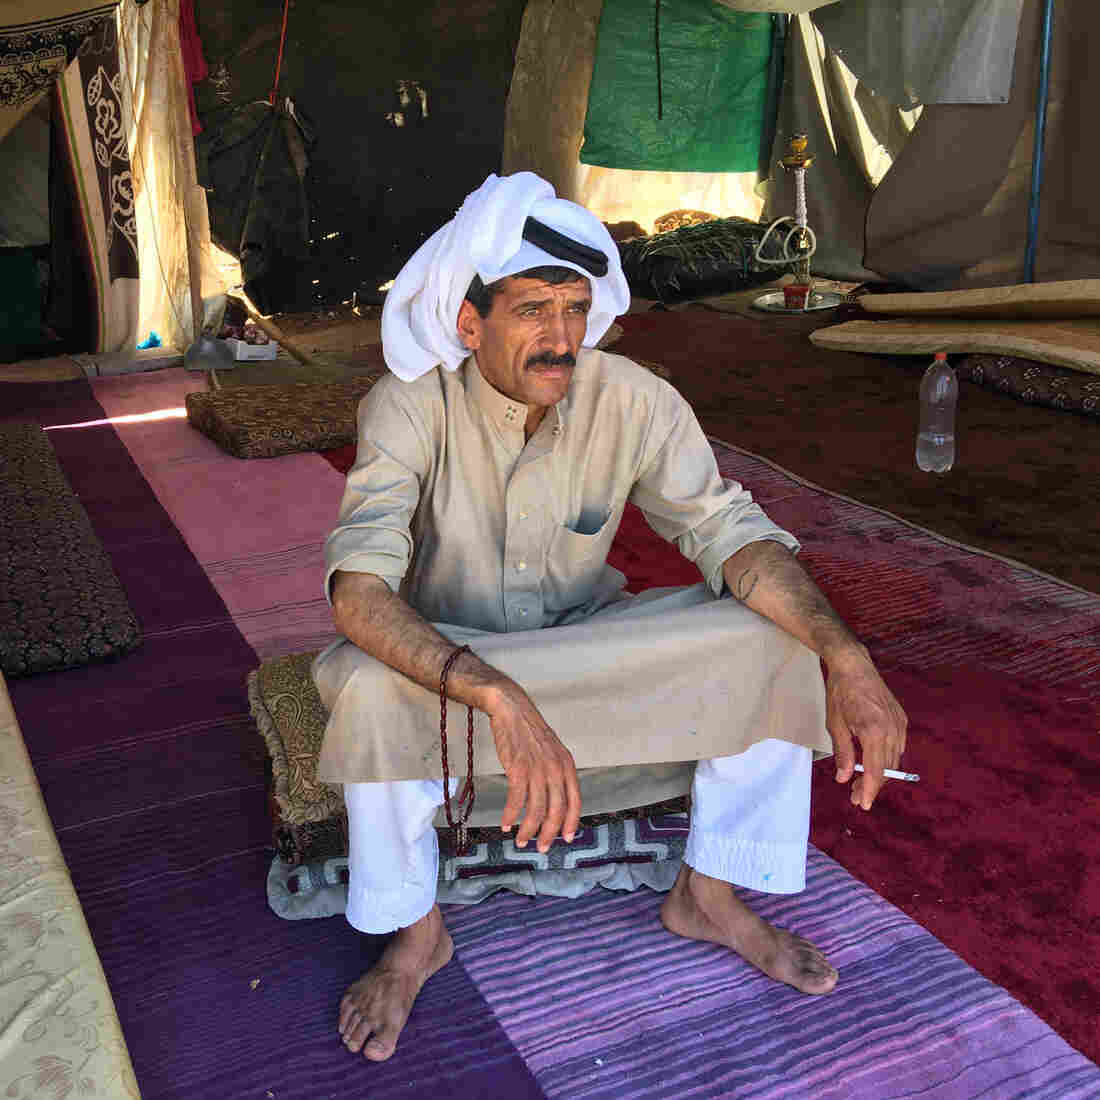 'No Hope': A Deadly Tent Fire In Jordan Leaves Syrian Refugee Farm Workers In Despair 2